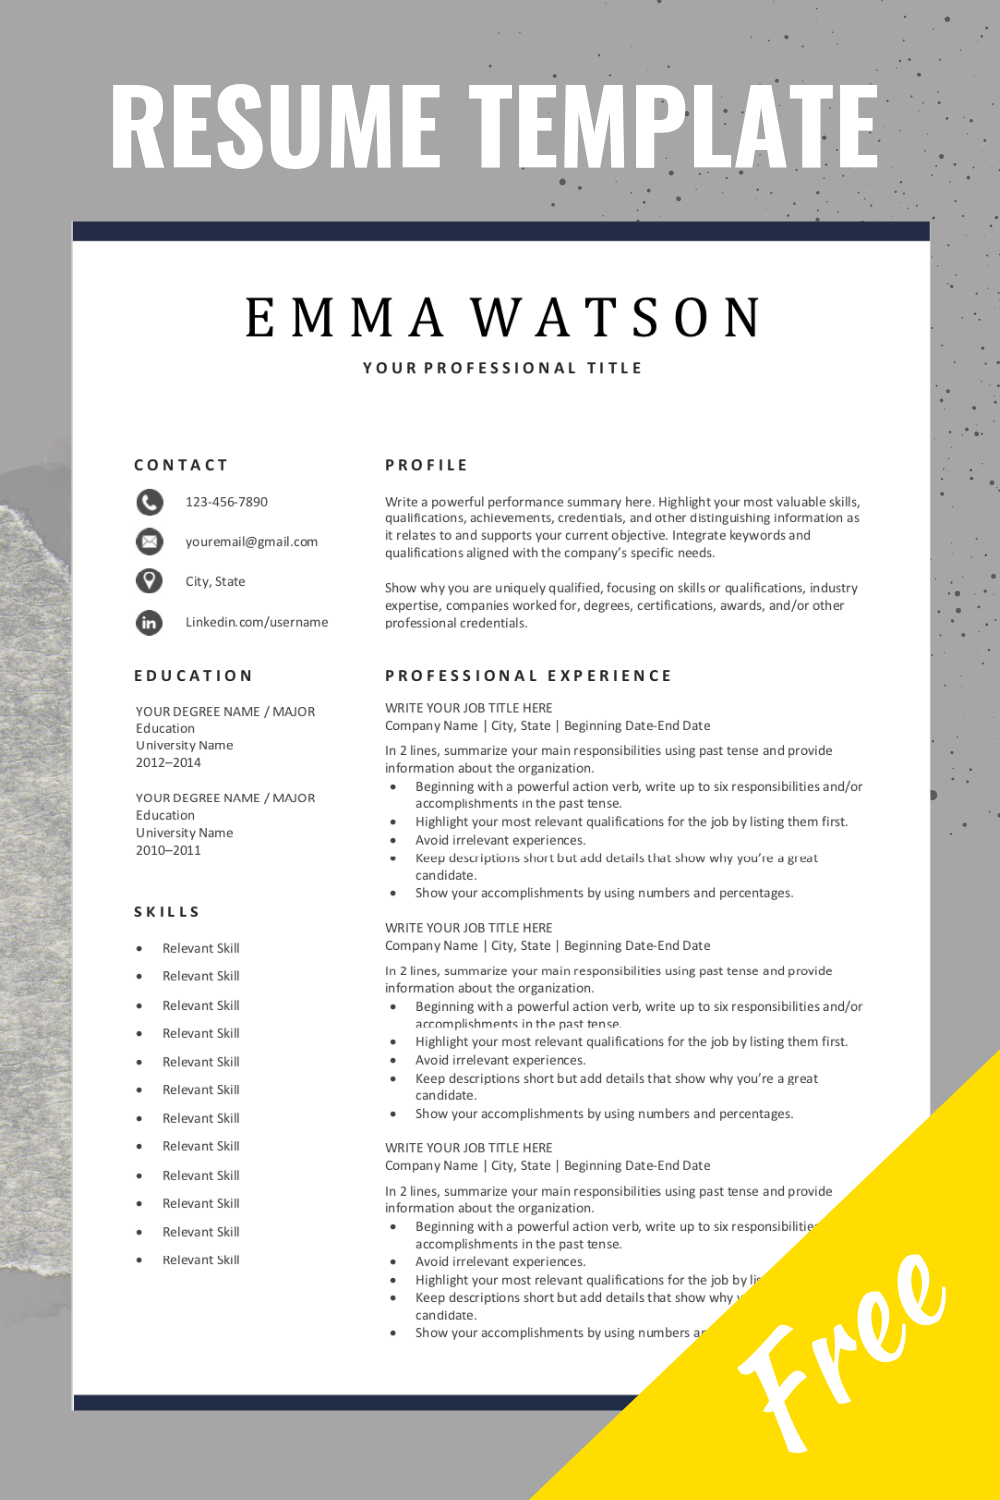 Are You Looking For A Free Editable Resume Template Sign Up For